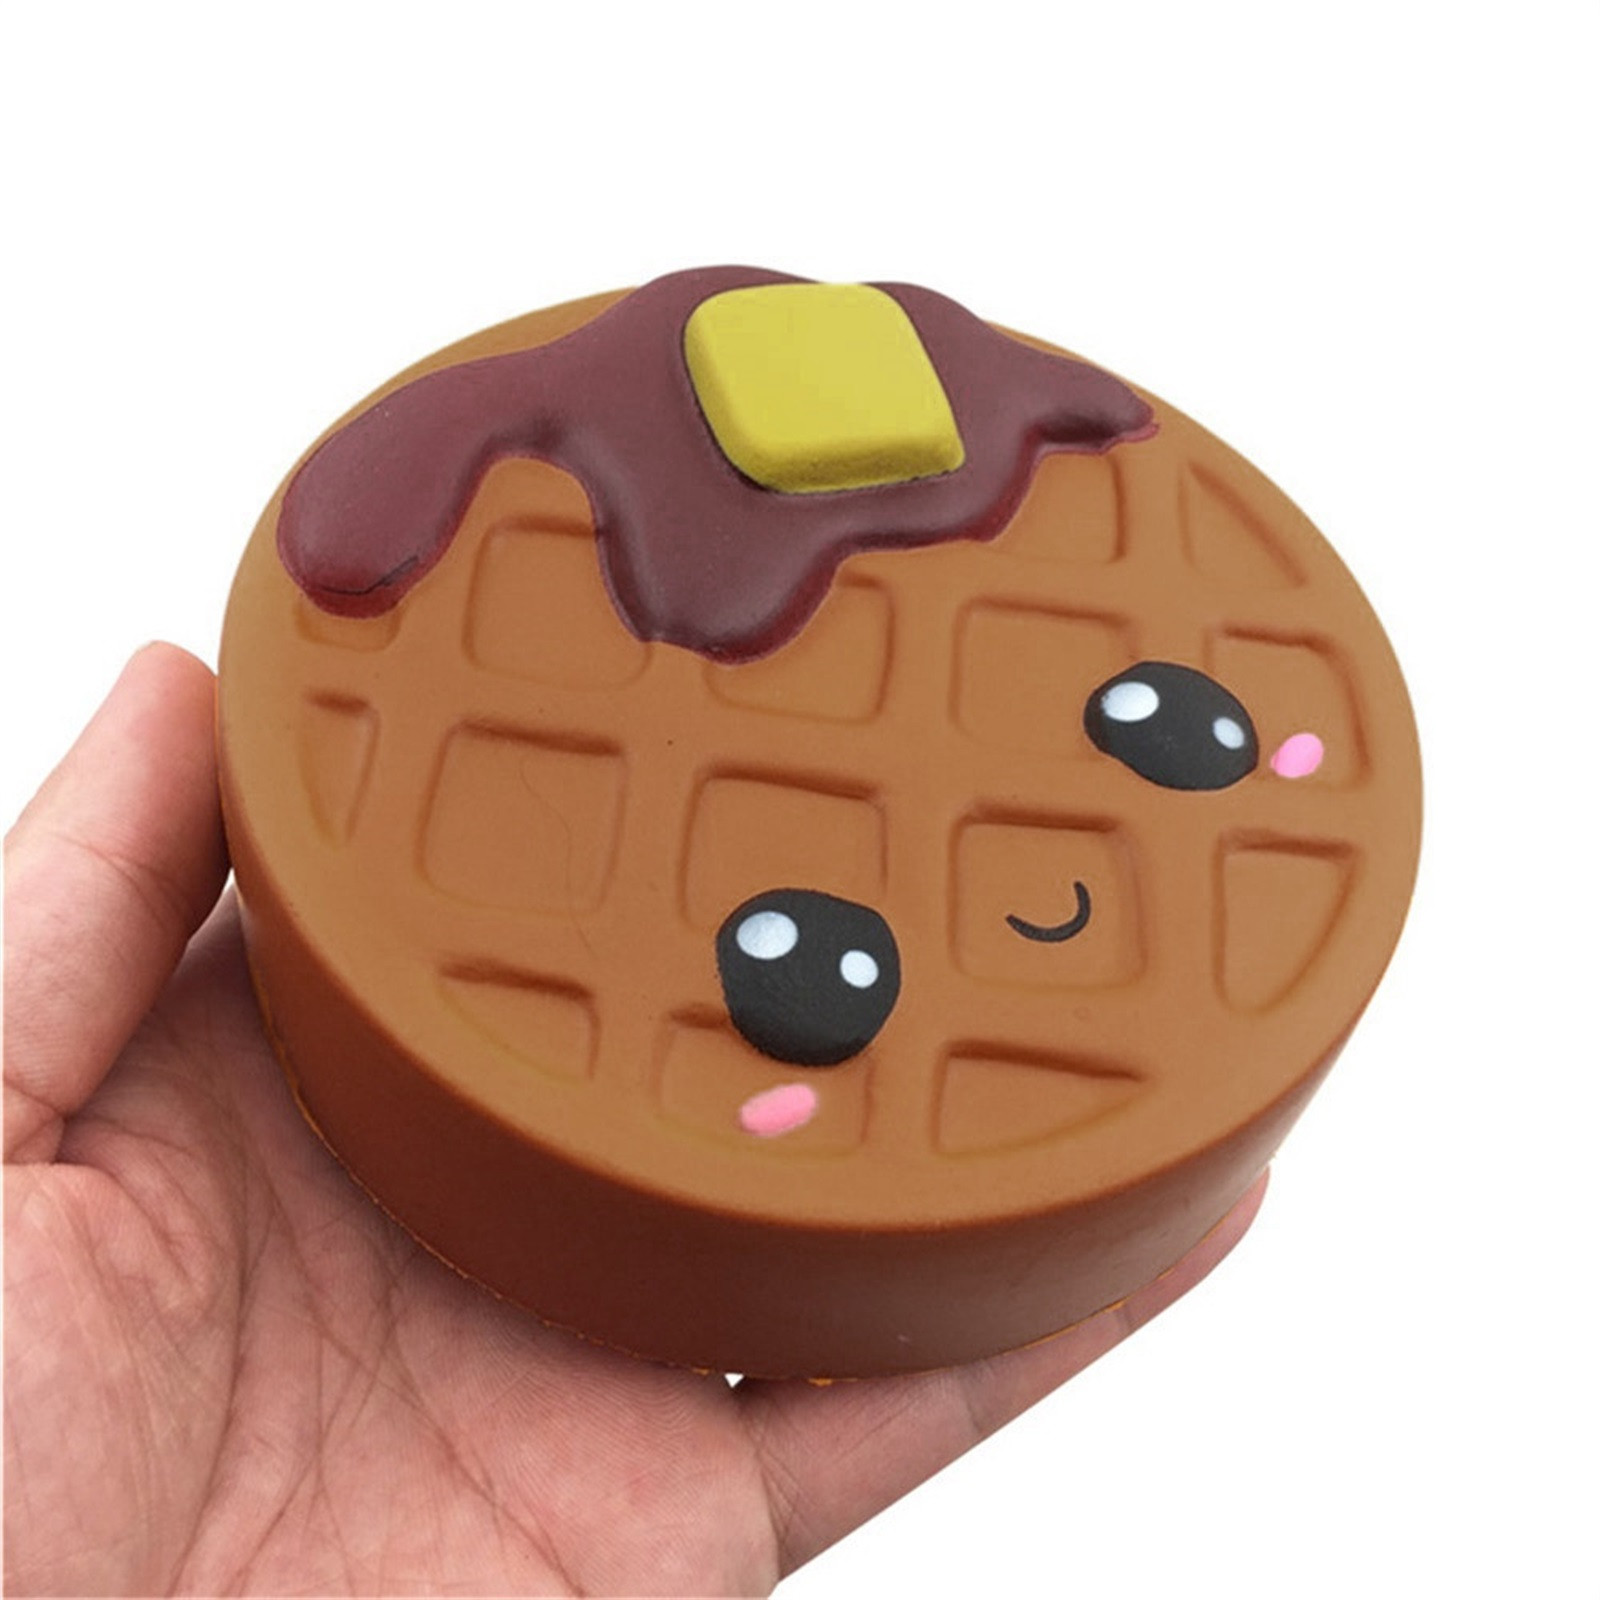 Gift Toy Fidget-Toys Biscuits Antistress-Gadget Chocolates Soft Squishy Cute Kawaii Decompression img2